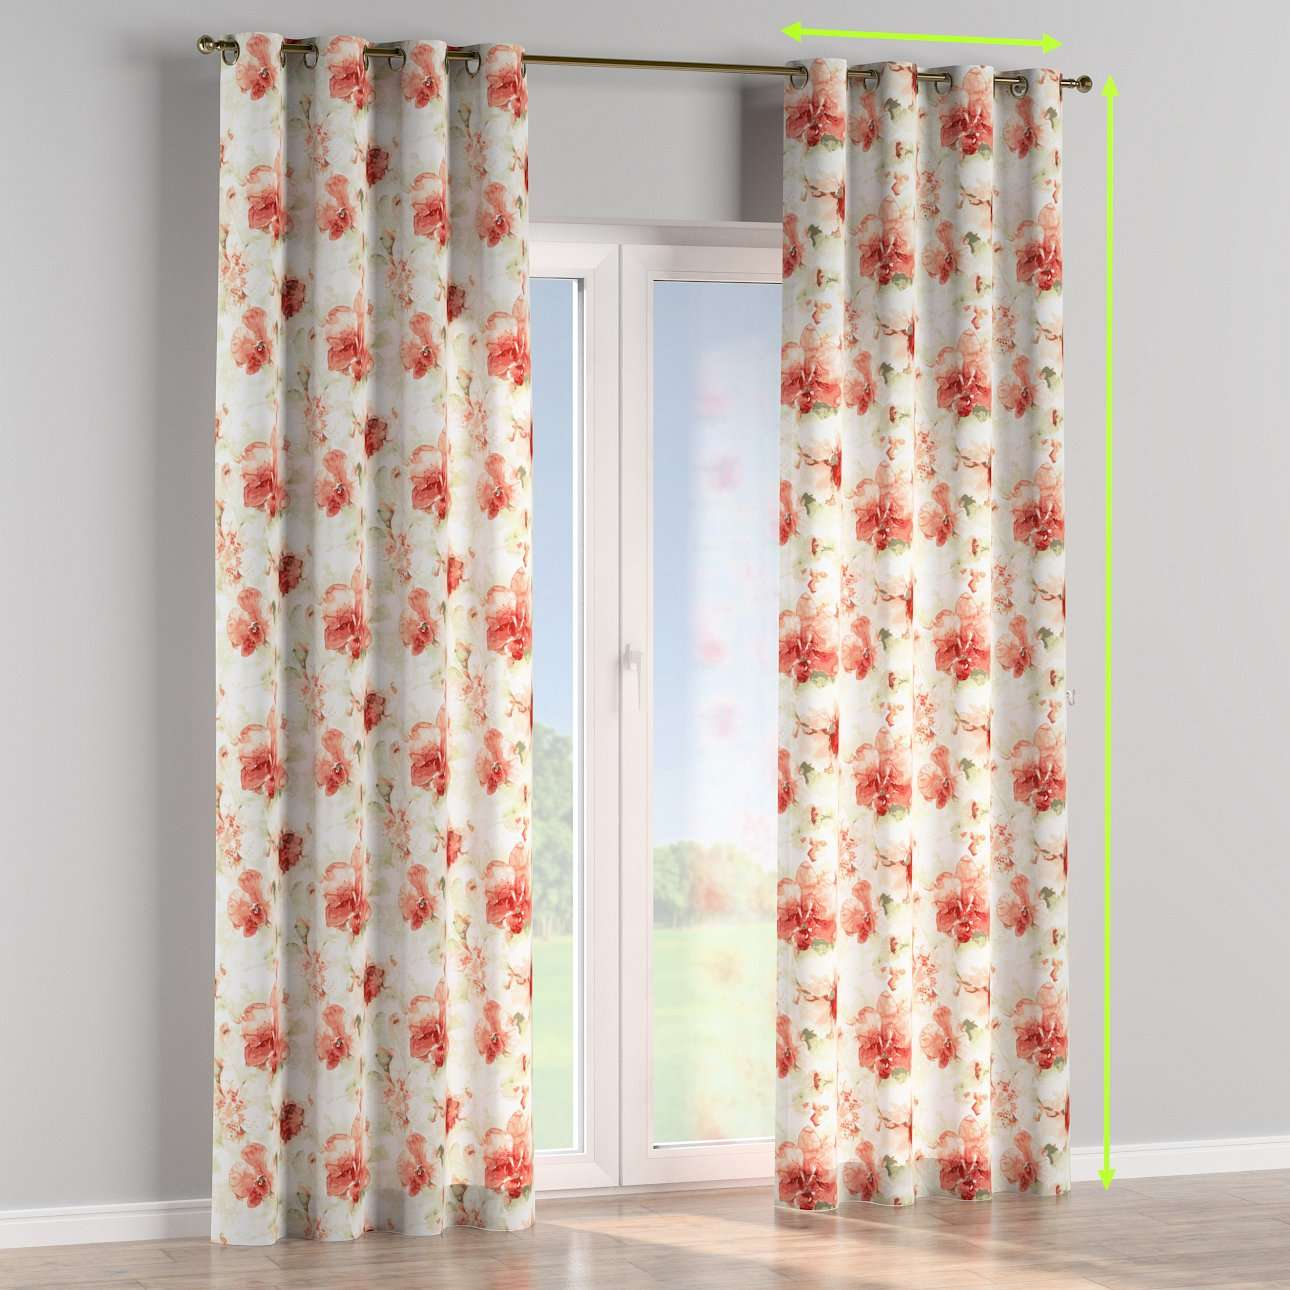 Eyelet curtains in collection Acapulco, fabric: 141-34